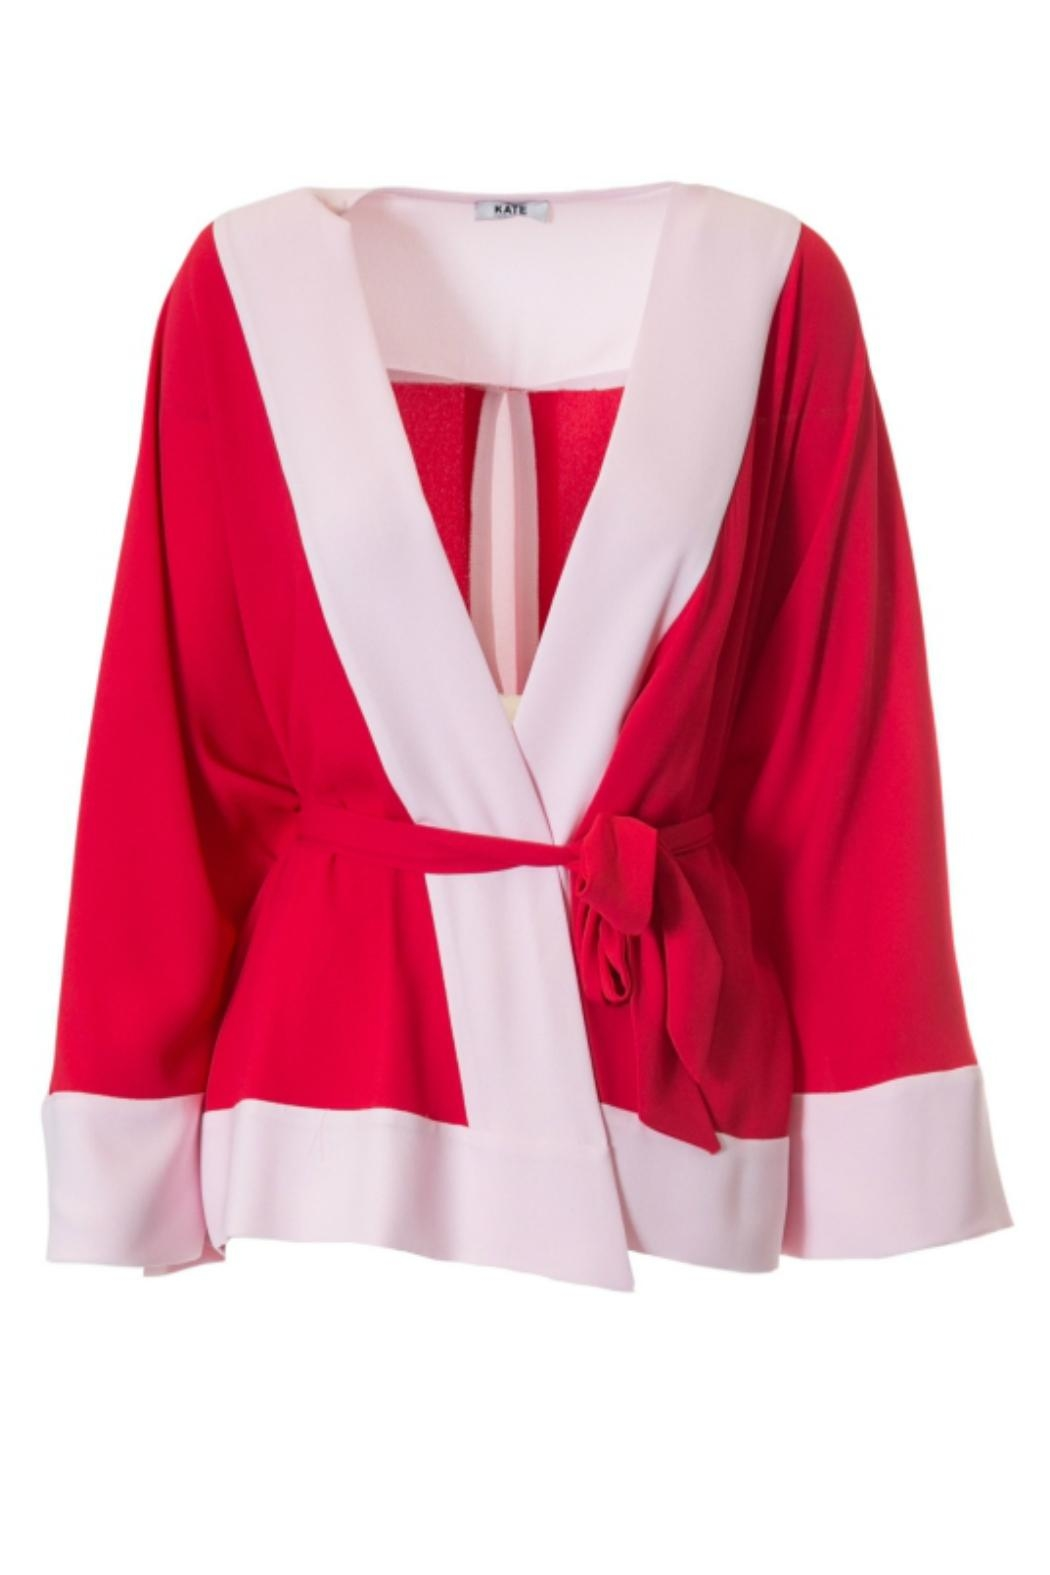 kate by laltramoda Coral Kimono Jacket from Crouch End by ...